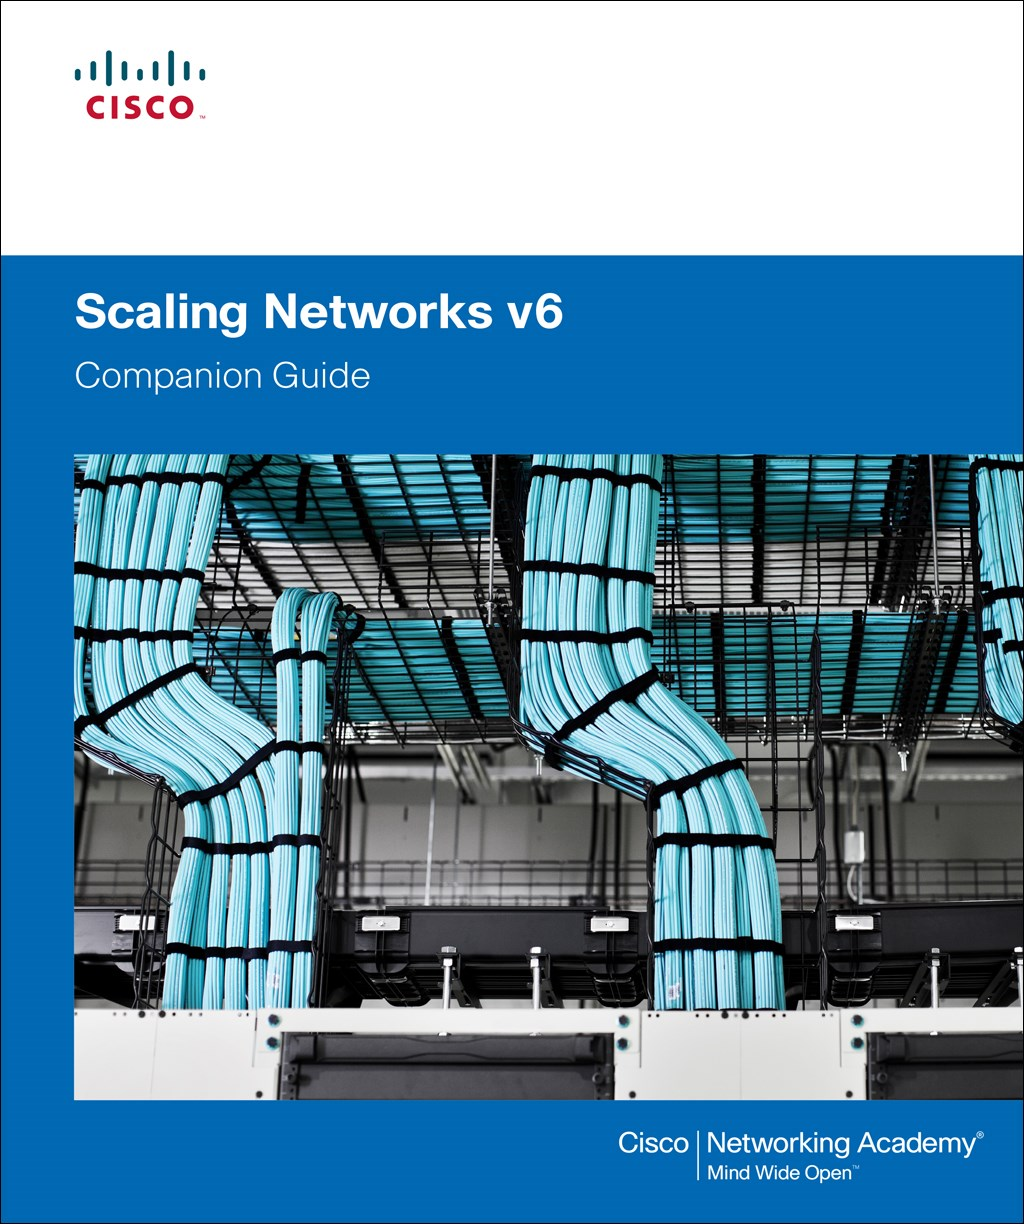 Scaling Networks V6 Companion Guide Cisco Network Diagram Design Elements Routers Win Mac Larger Cover